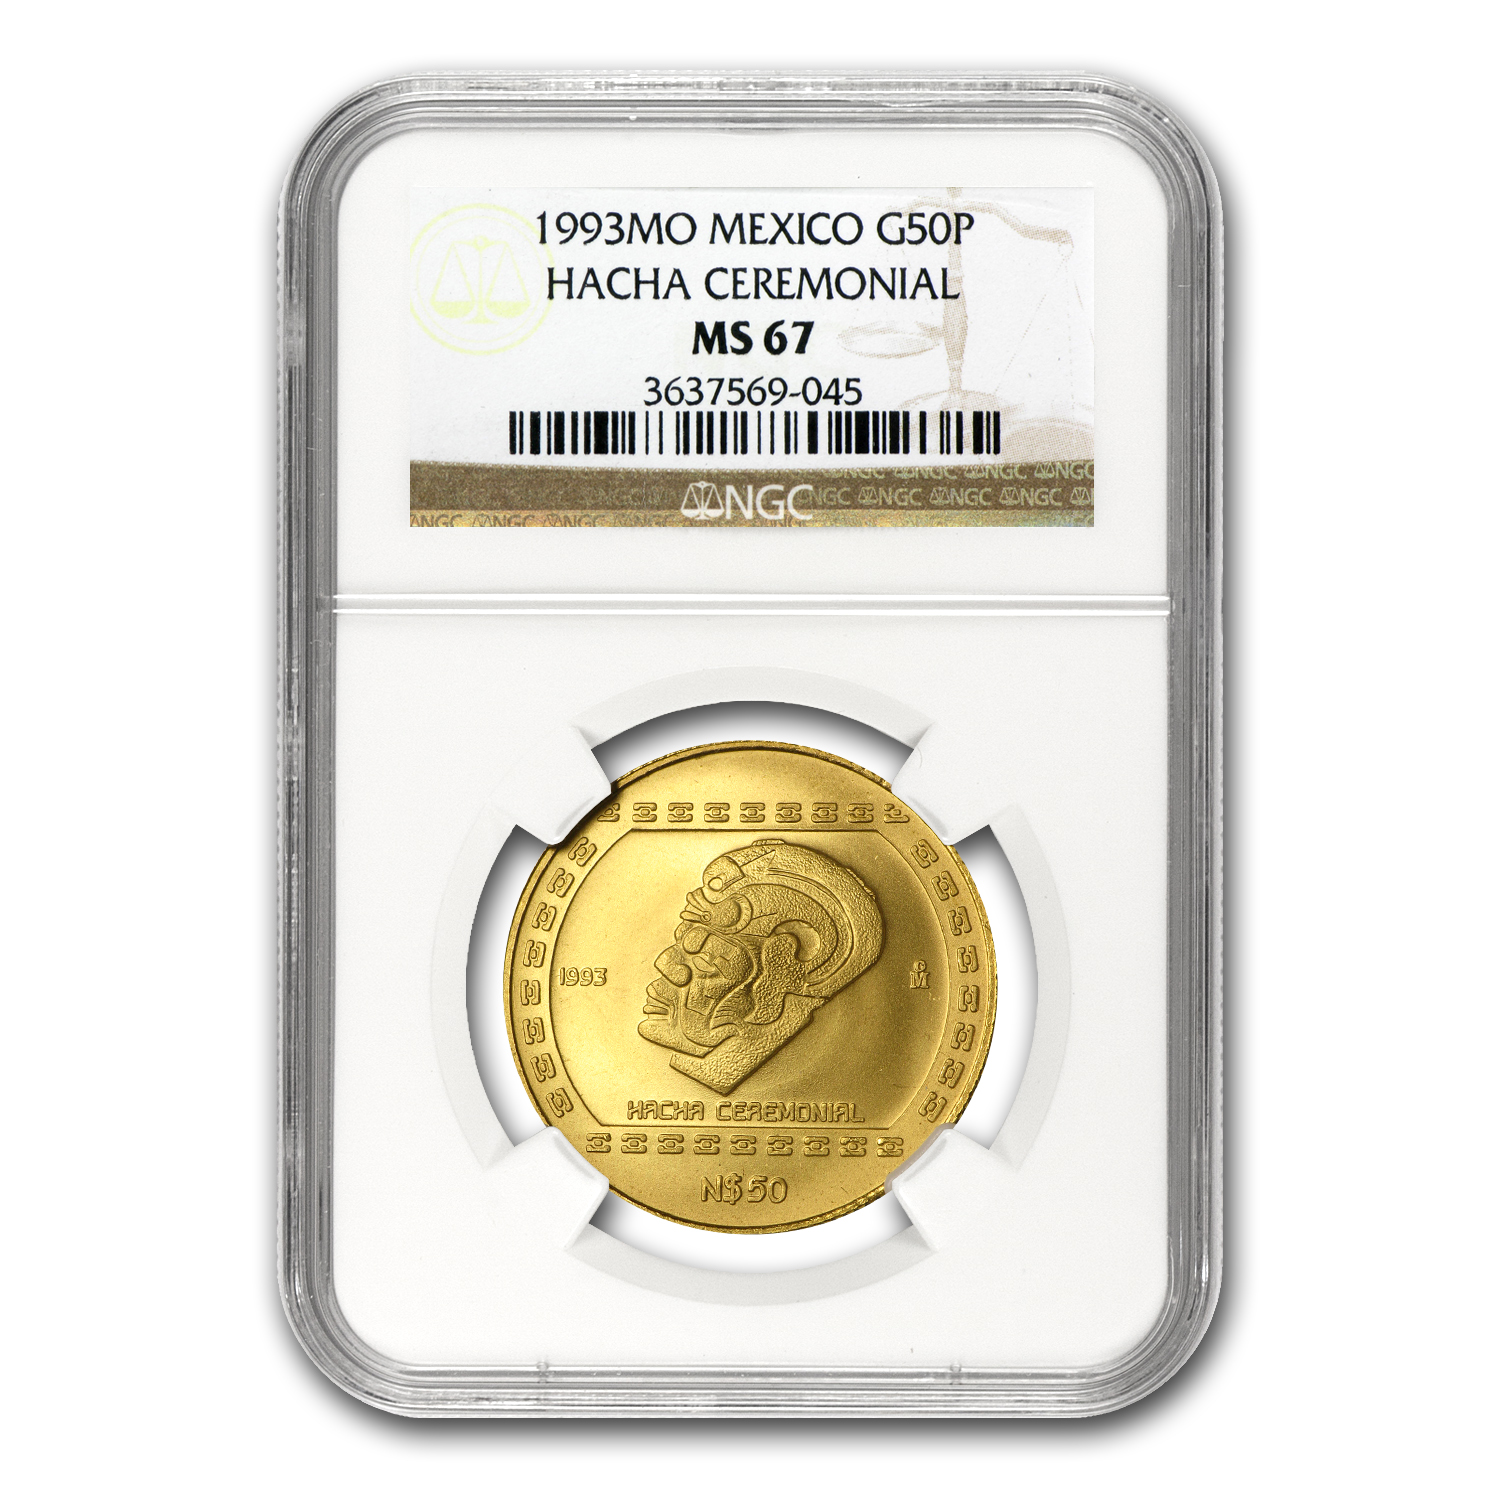 1993 Mexico 50 Pesos Gold Hacha Ceremonial NGC MS-67